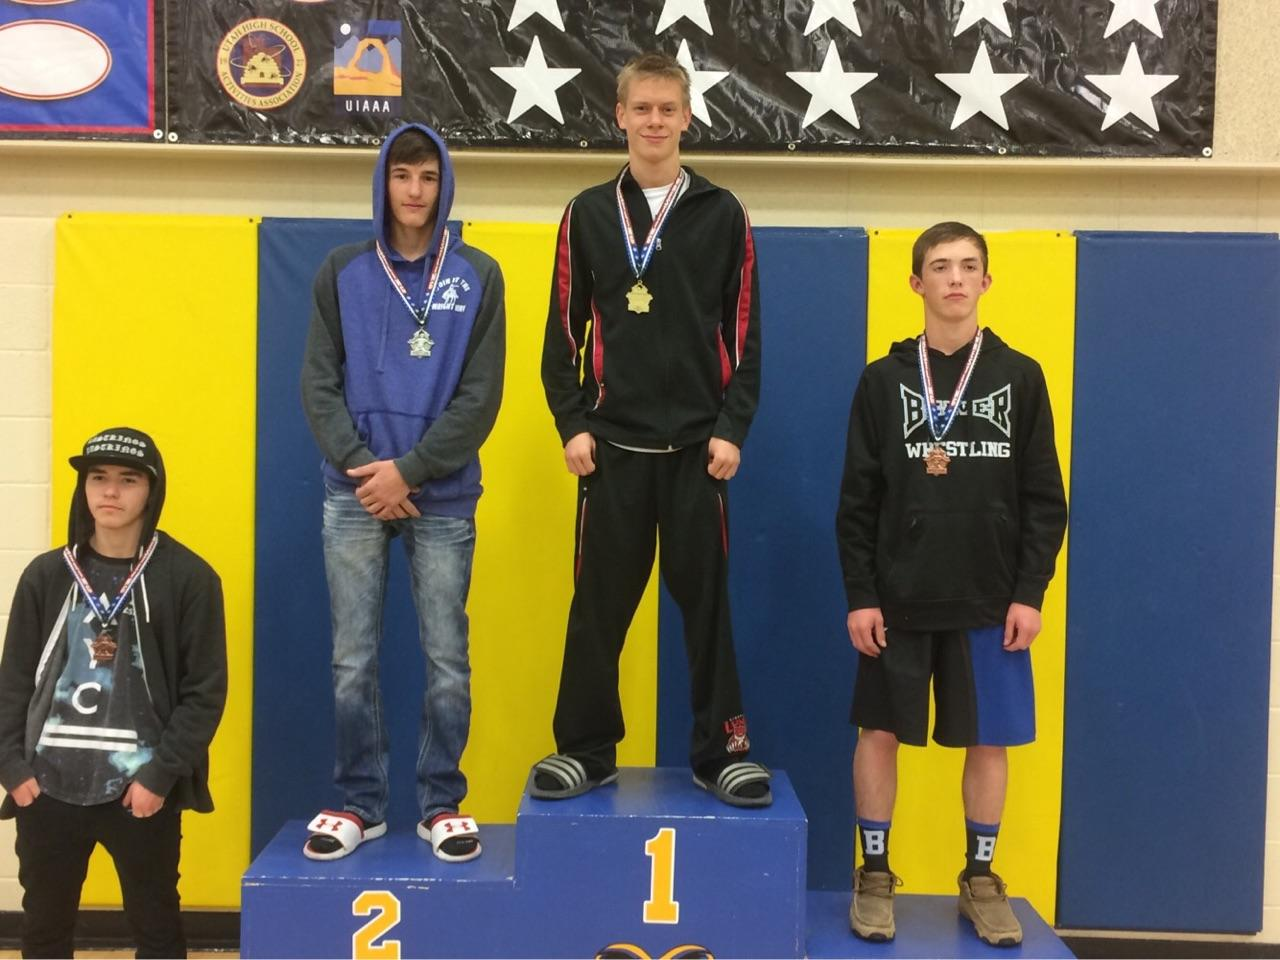 Lincoln Wrestlers Compete at Parowan